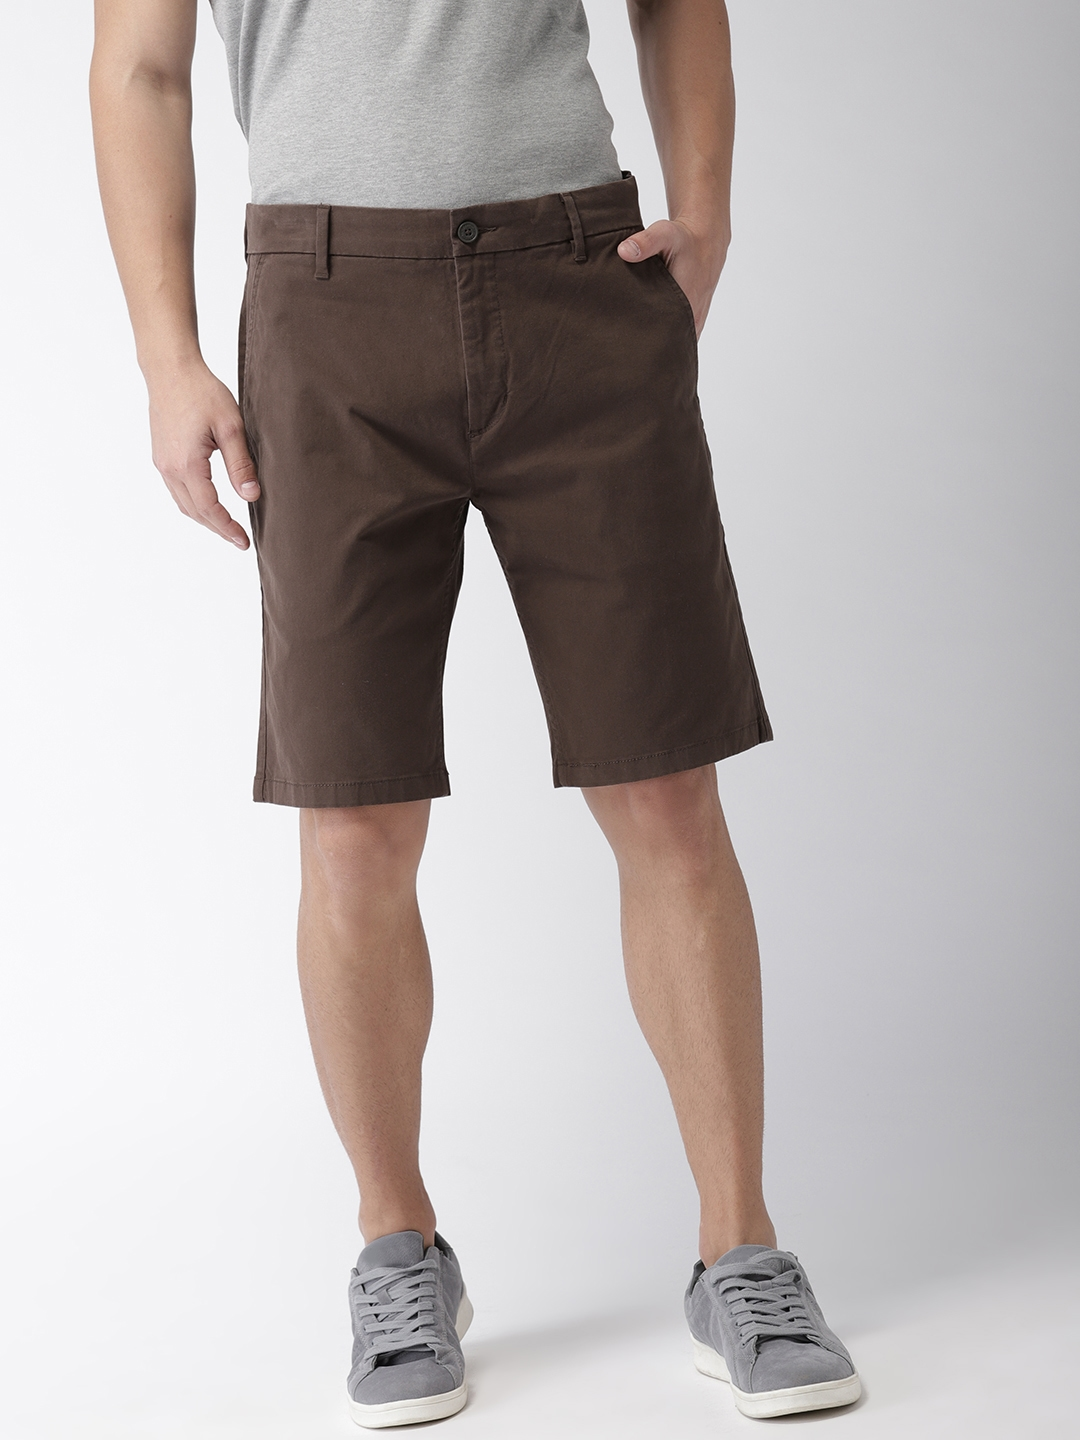 ff5f8e45 Buy Levis Men Brown Solid Regular Tapered Fit Chino Shorts 502 ...